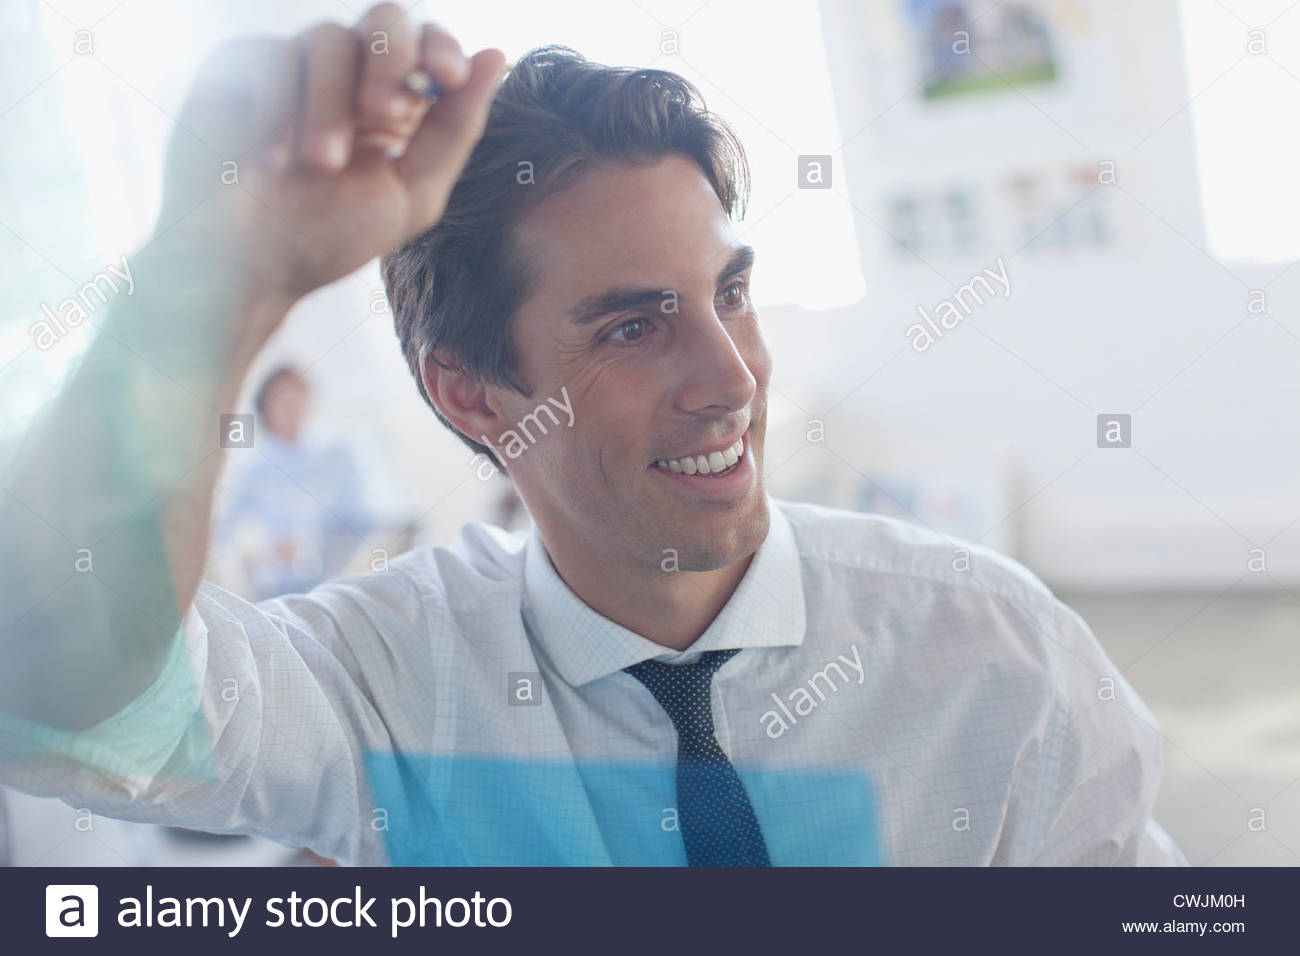 Smiling businessman leaning against glass in office Photo Stock